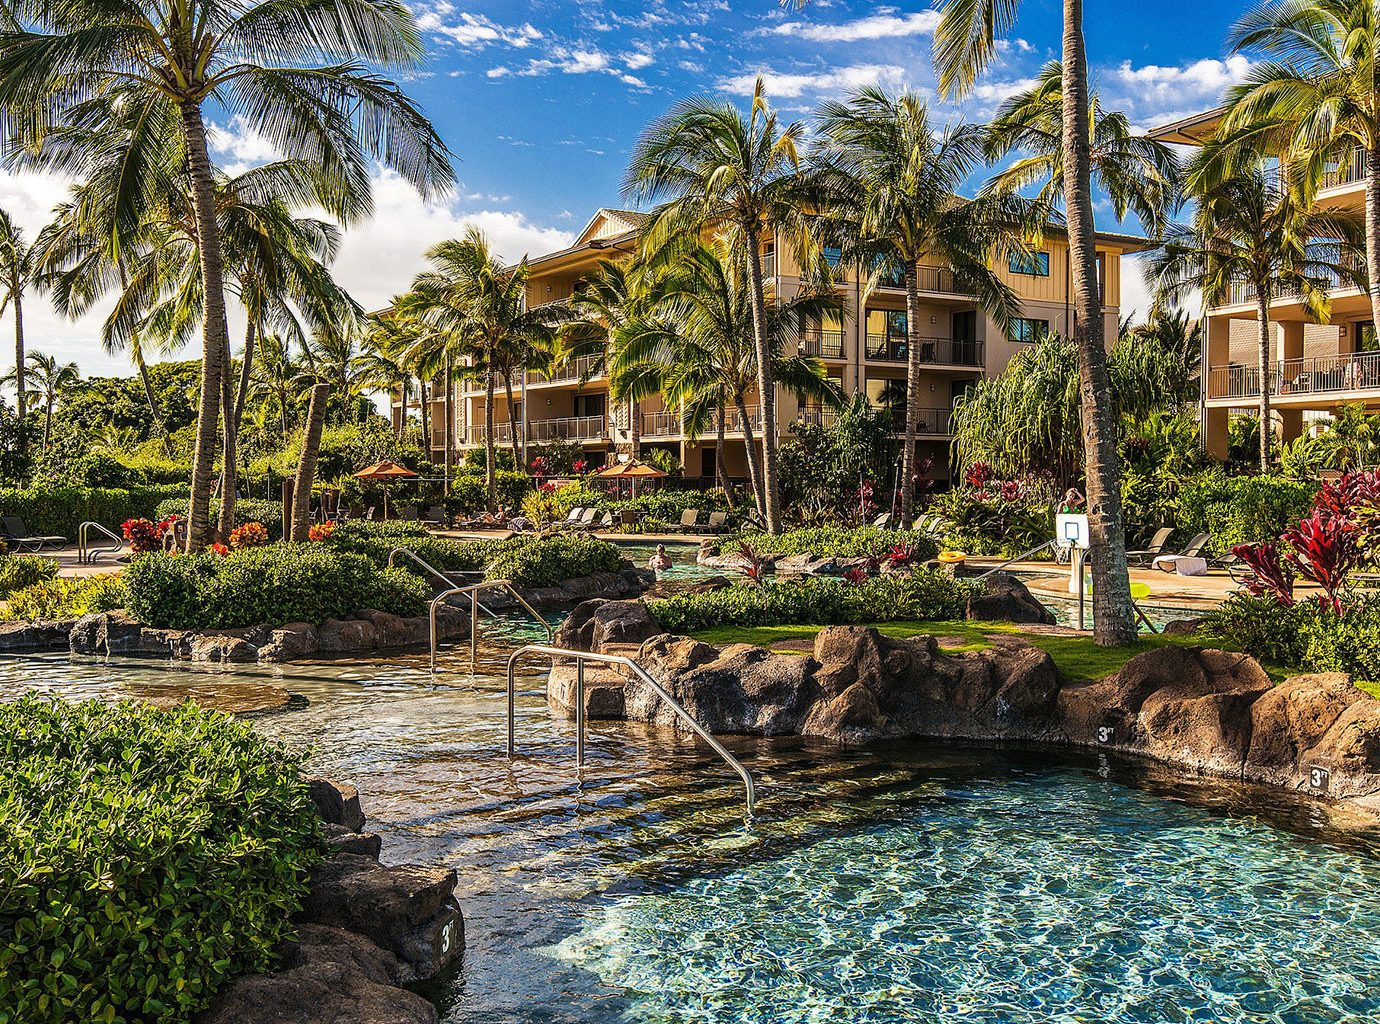 12 The 10 BEST Hotels in Hawaii, from Waikiki to Maui   Jetsetter